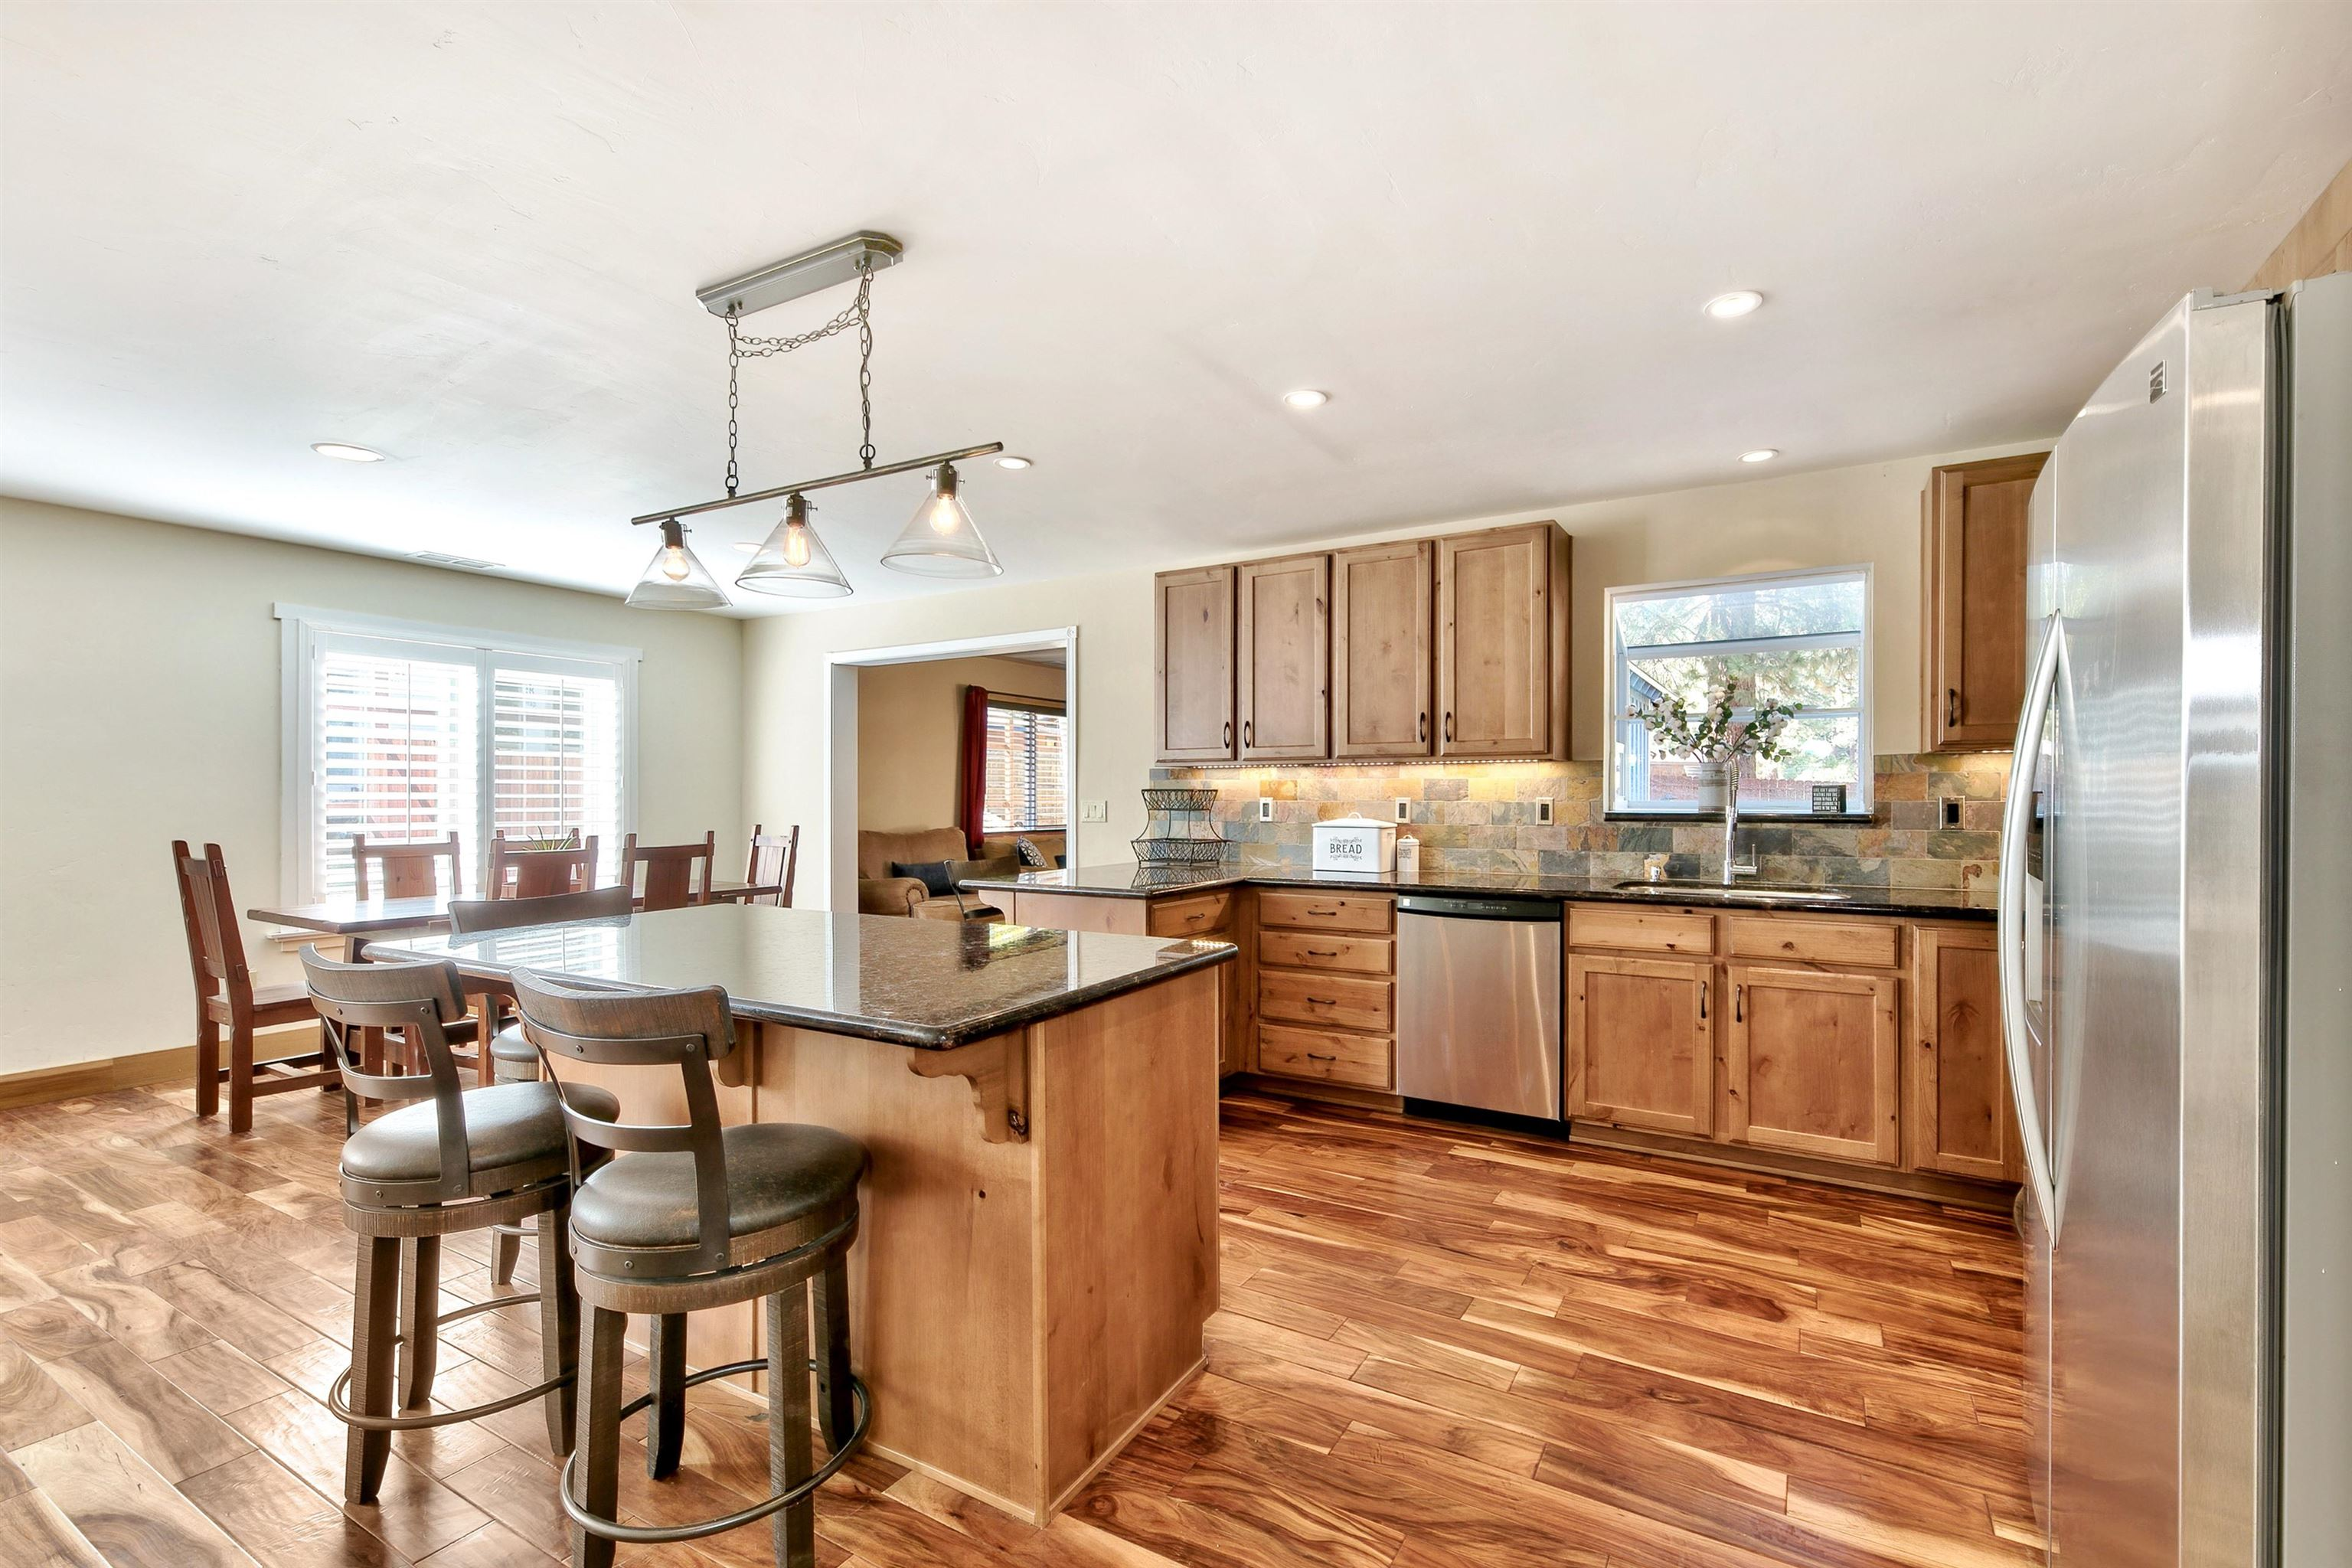 Image for 10815 Palisades Drive, Truckee, CA 96161-3113